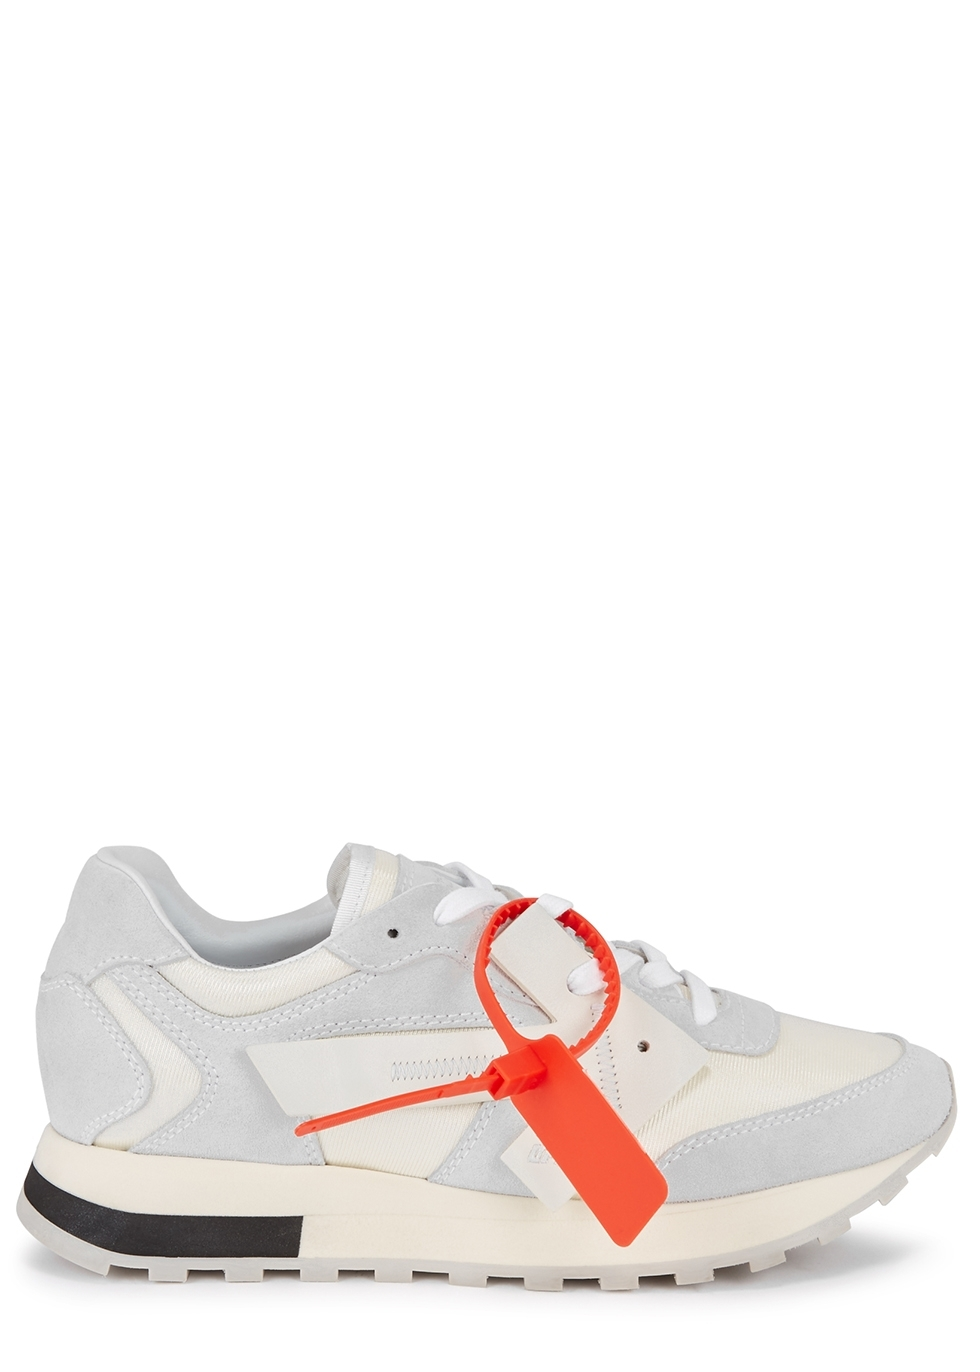 f2bdb54bdad Women s Designer Trainers - Sport Shoes - Harvey Nichols